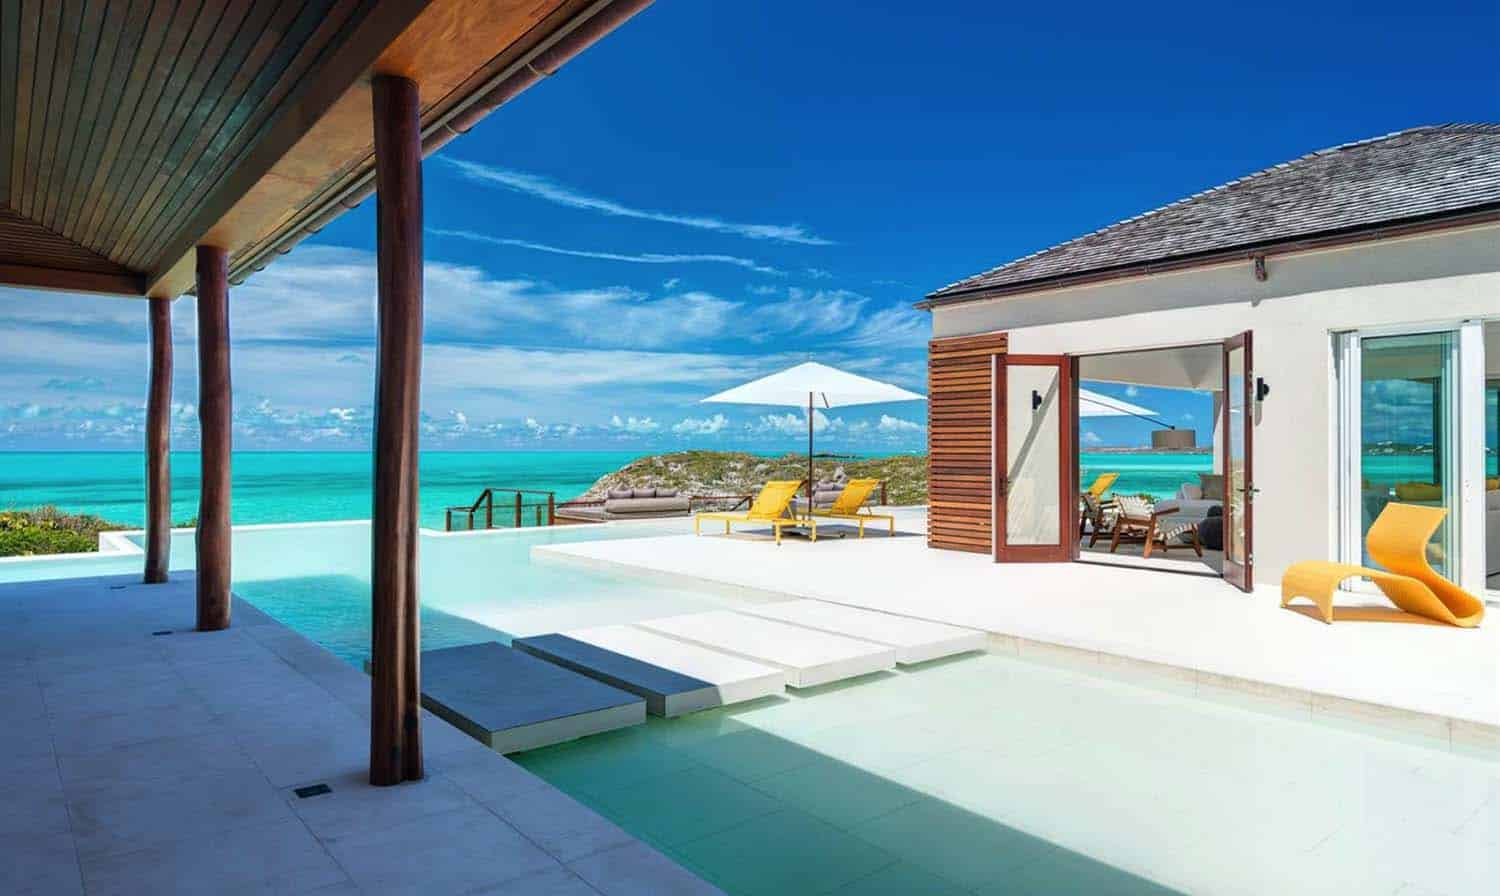 Turtle House-Turks And Caicos Islands-35-1 Kindesign